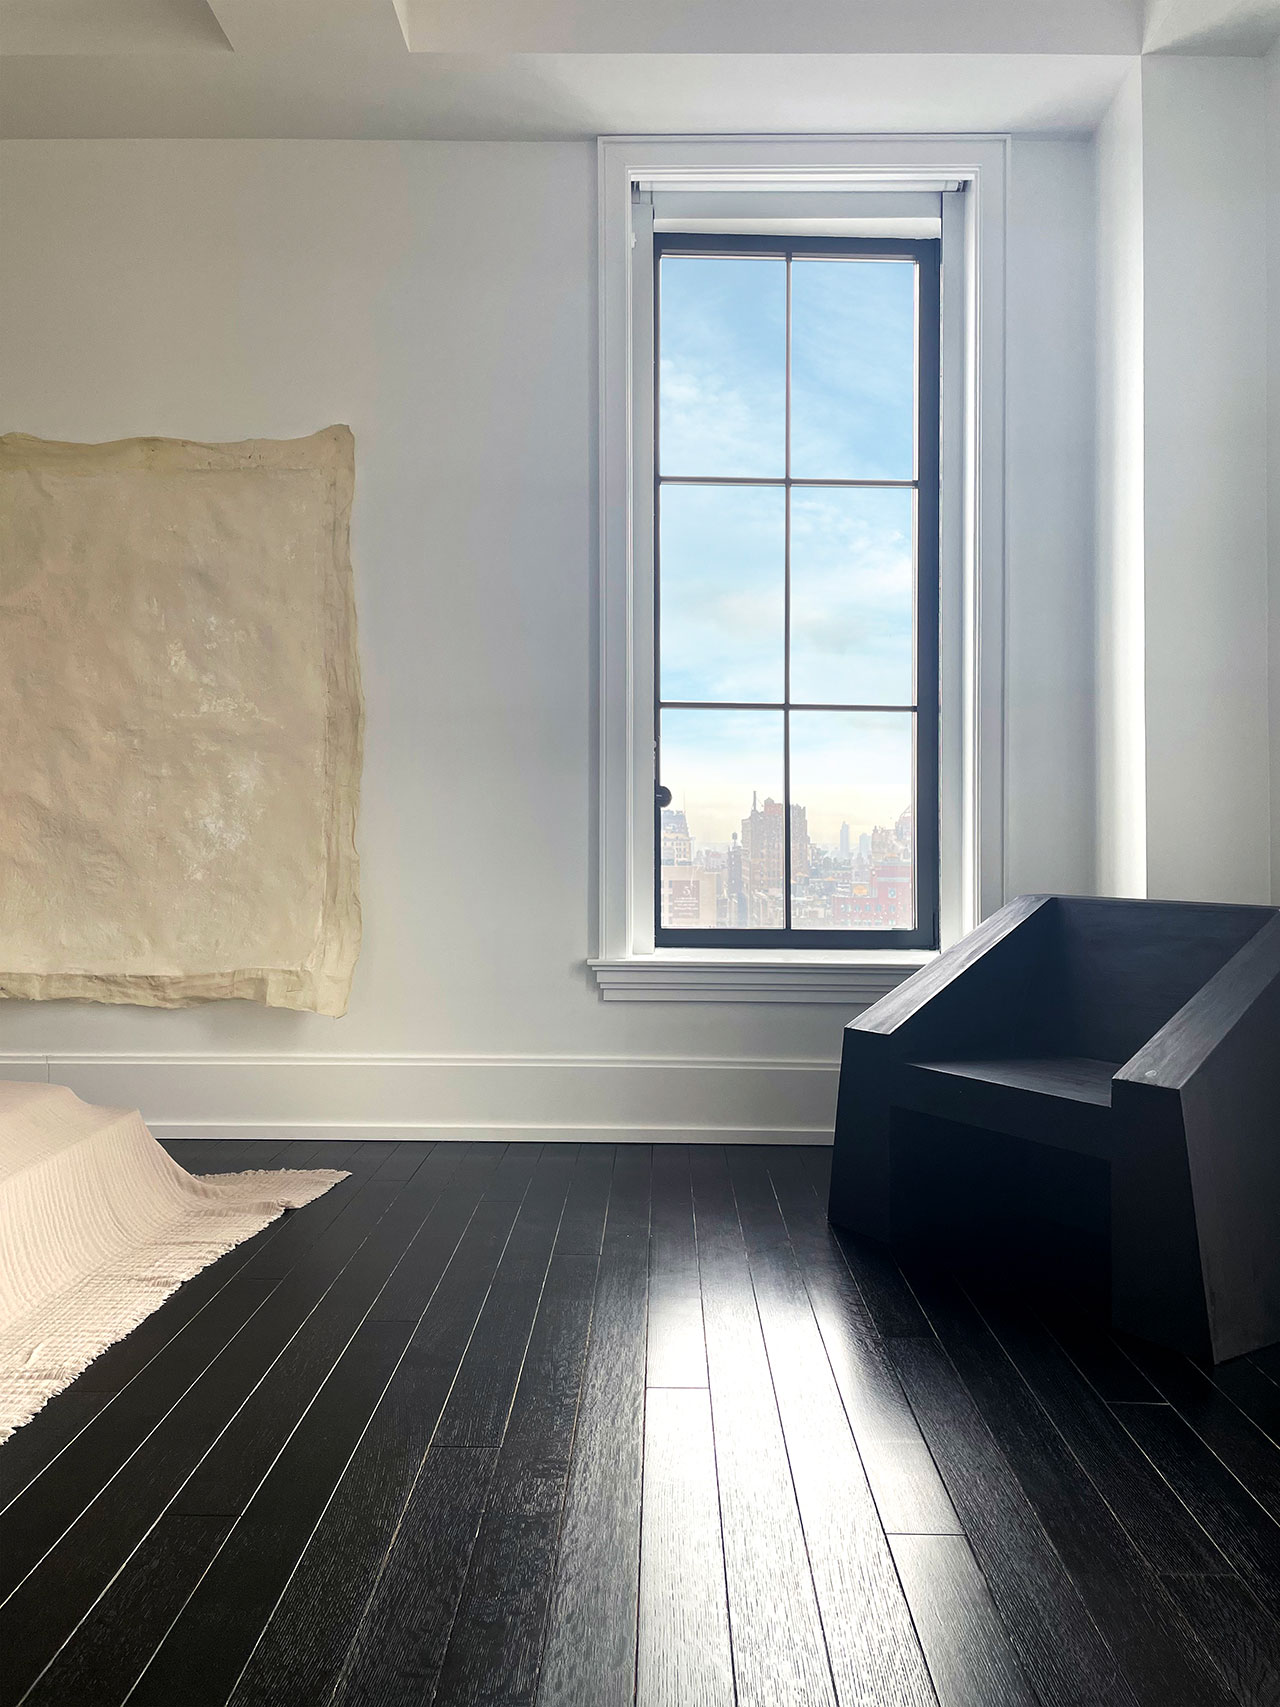 Galerie Philia at Walker Tower, Chelsea, New York. Courtesy of Galerie Philia. Featured: Lucas Morten, Kub Chair, 2020. Handwaxed Plywood. 95 x 65 x 75.5 cm.